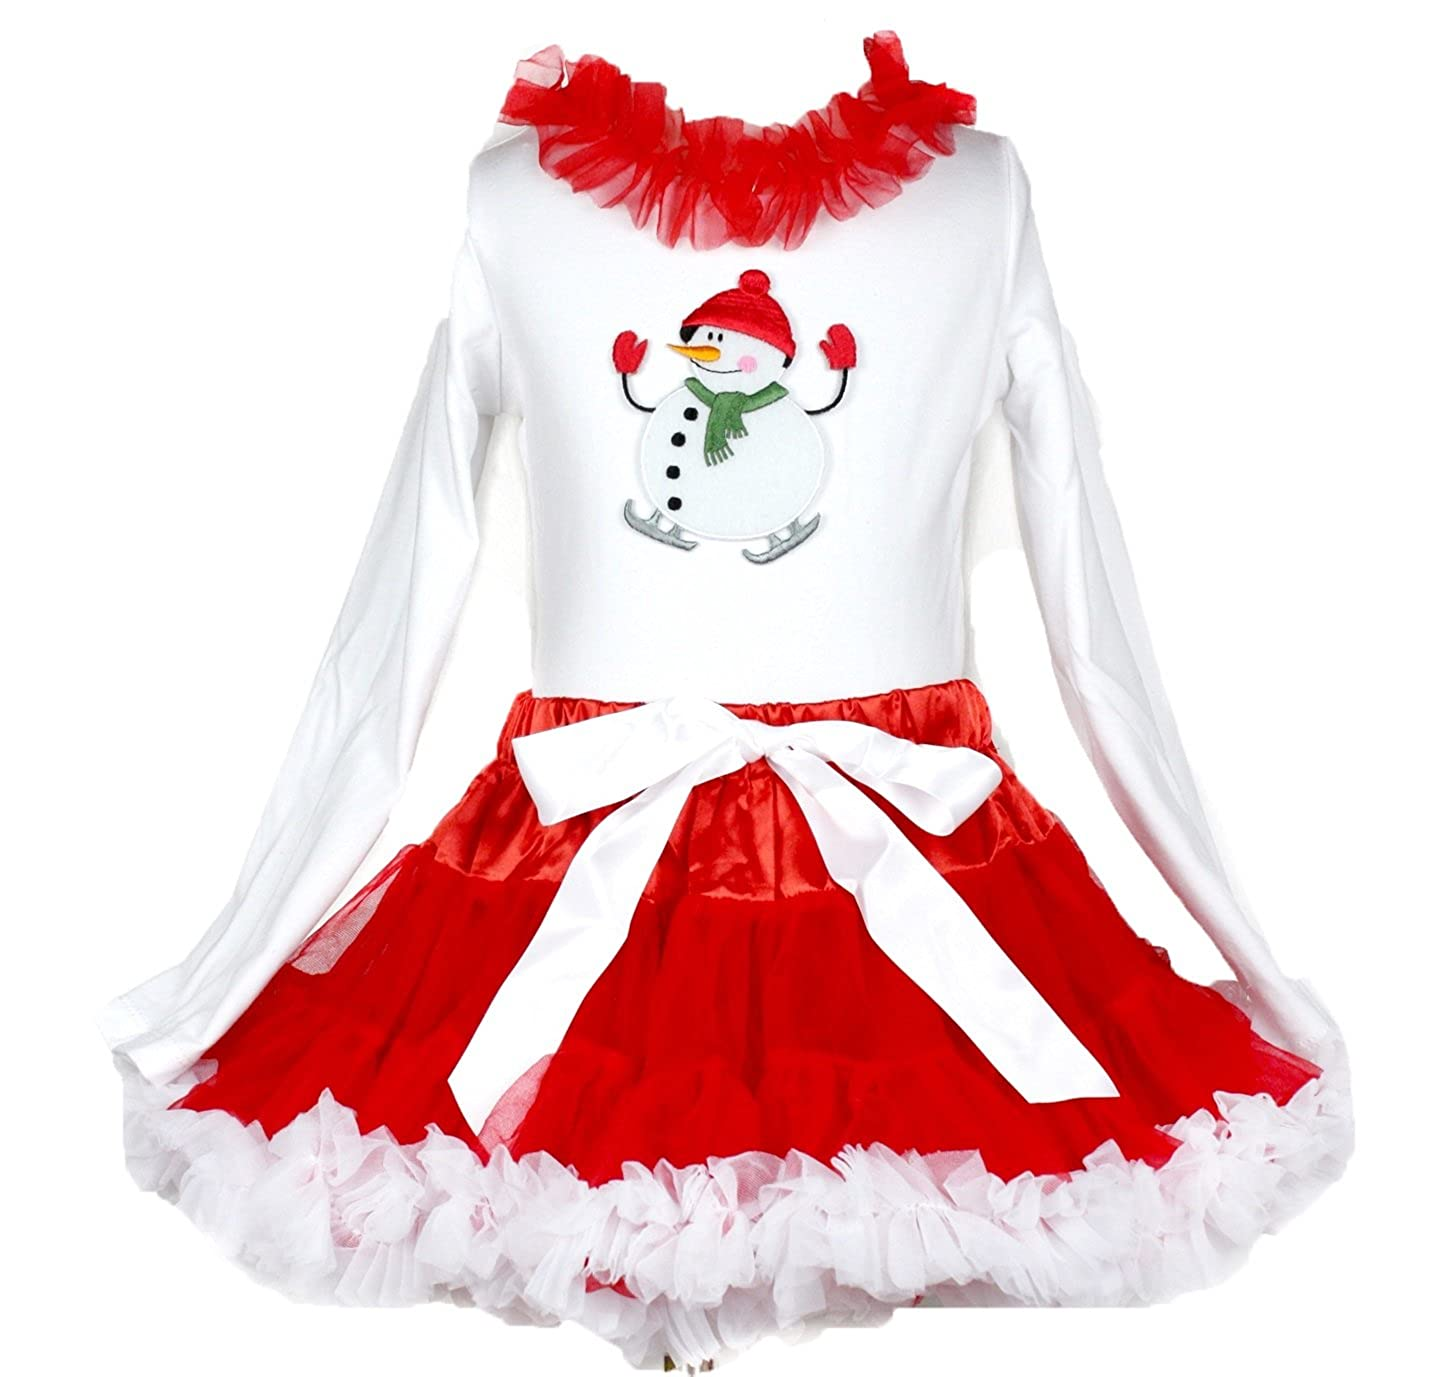 Christmas Dress Snowman Print White Cotton L//s Shirt Solid Red Skirt Set 1-8y